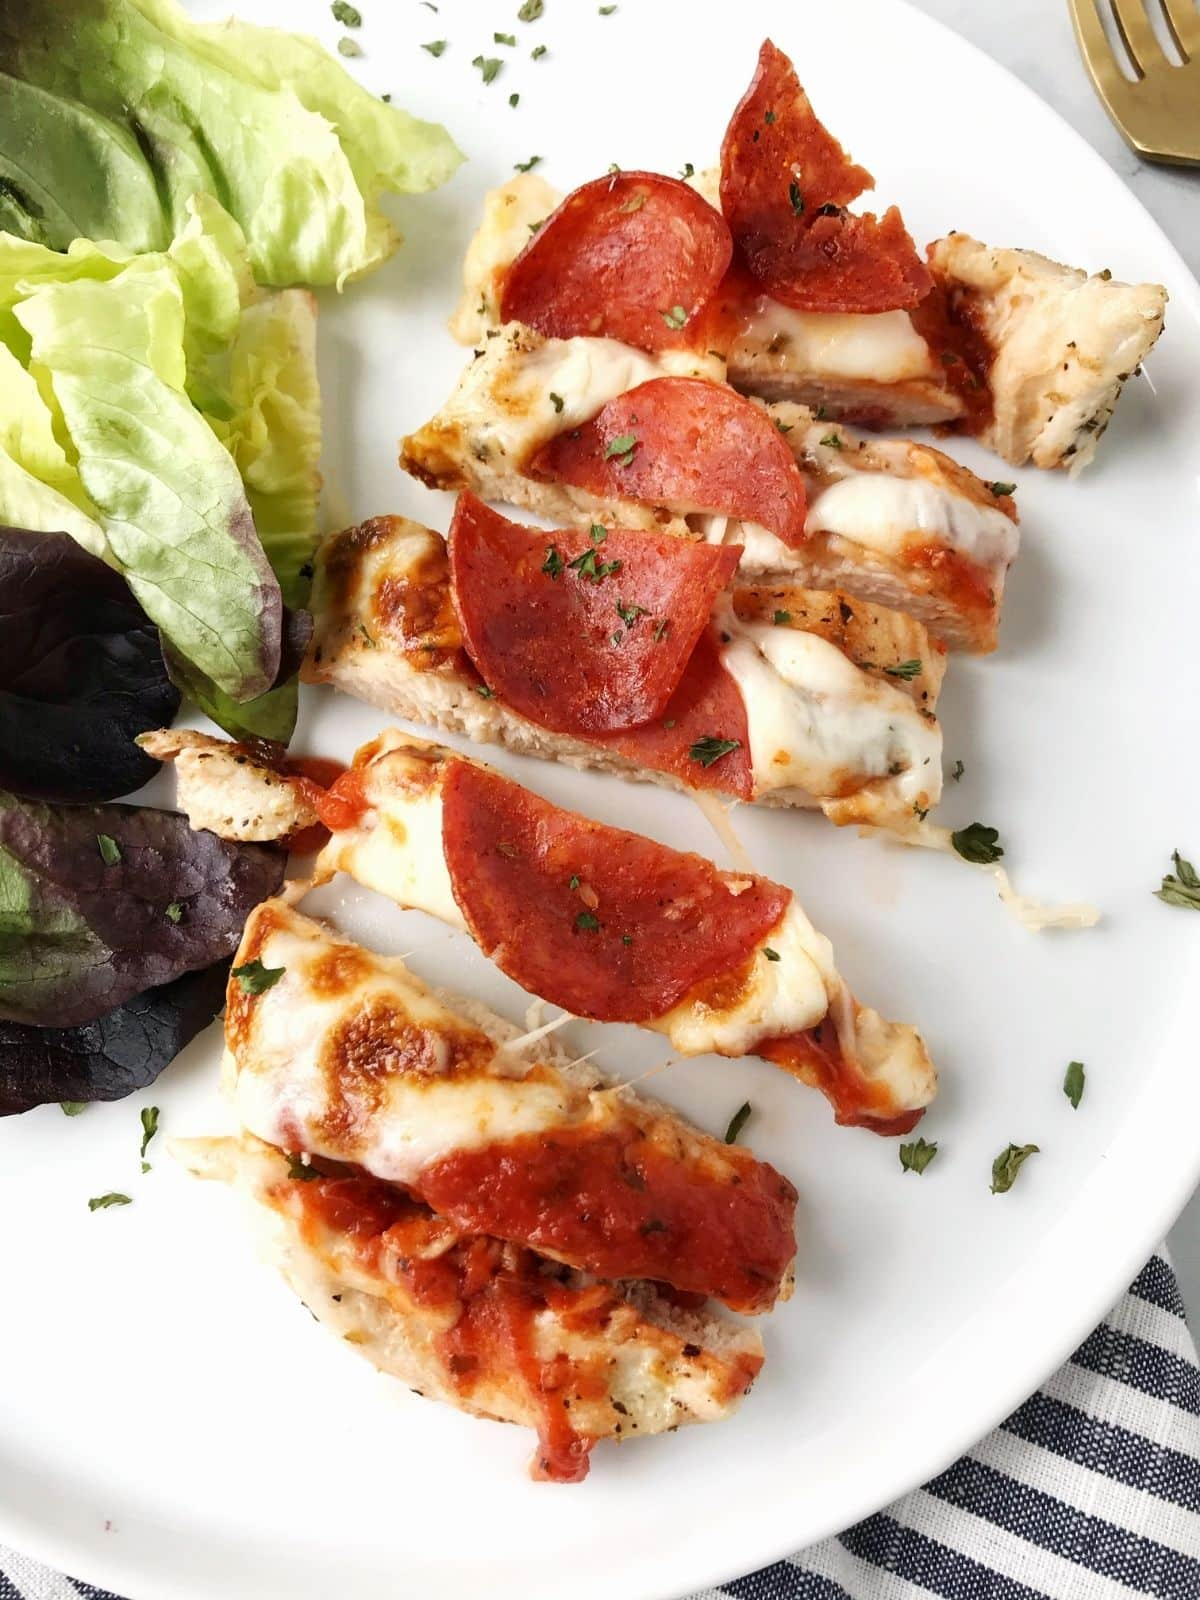 sliced chicken on a plate with a green salad